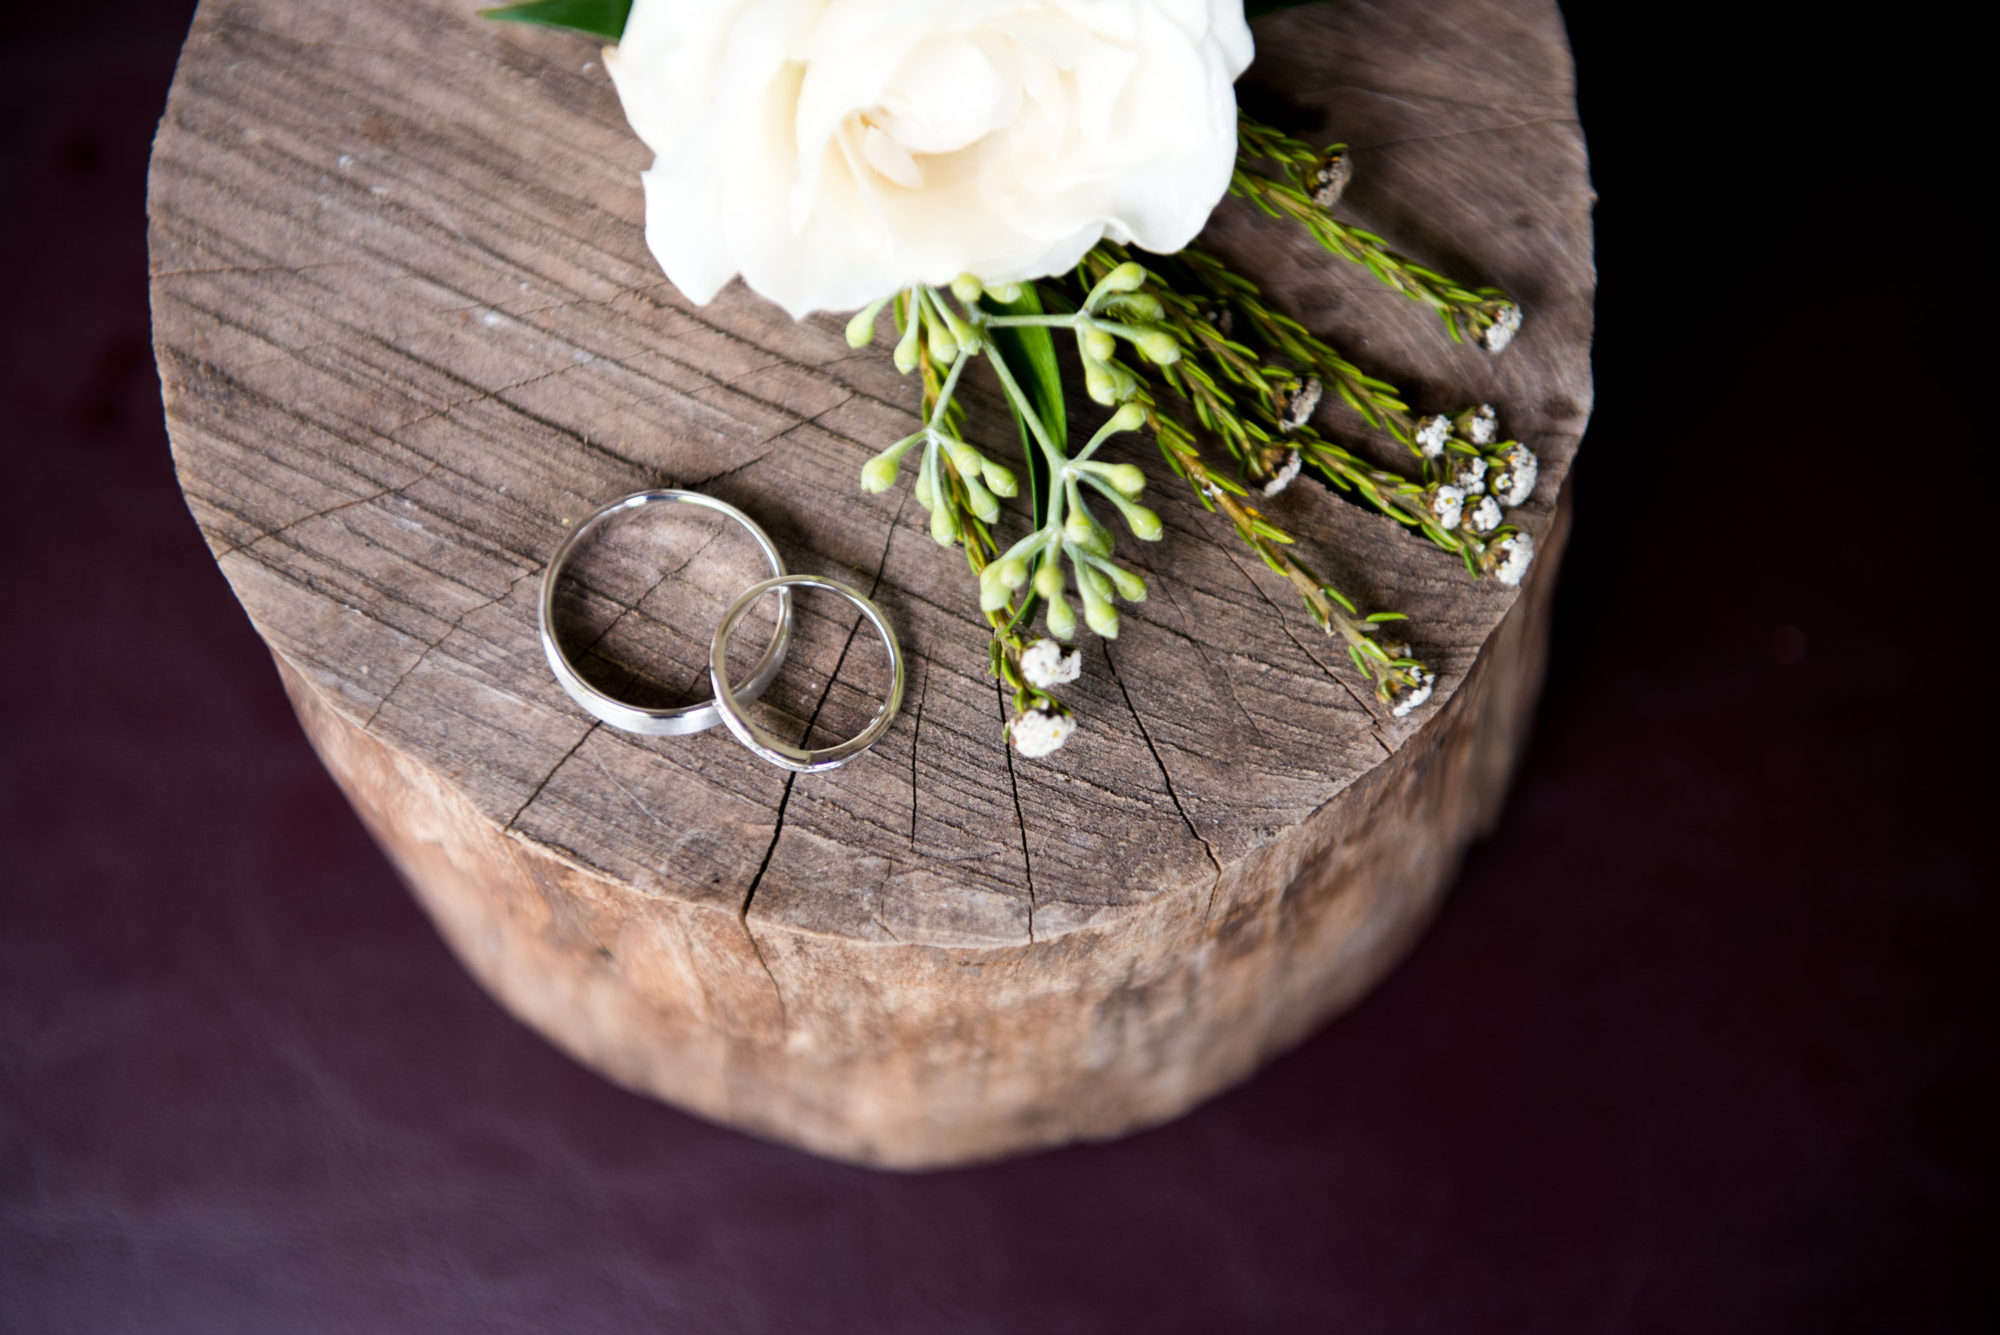 Wedding bands by  Alastair Crombie from Made You Look  and floral arrangements by  Verdi Florists